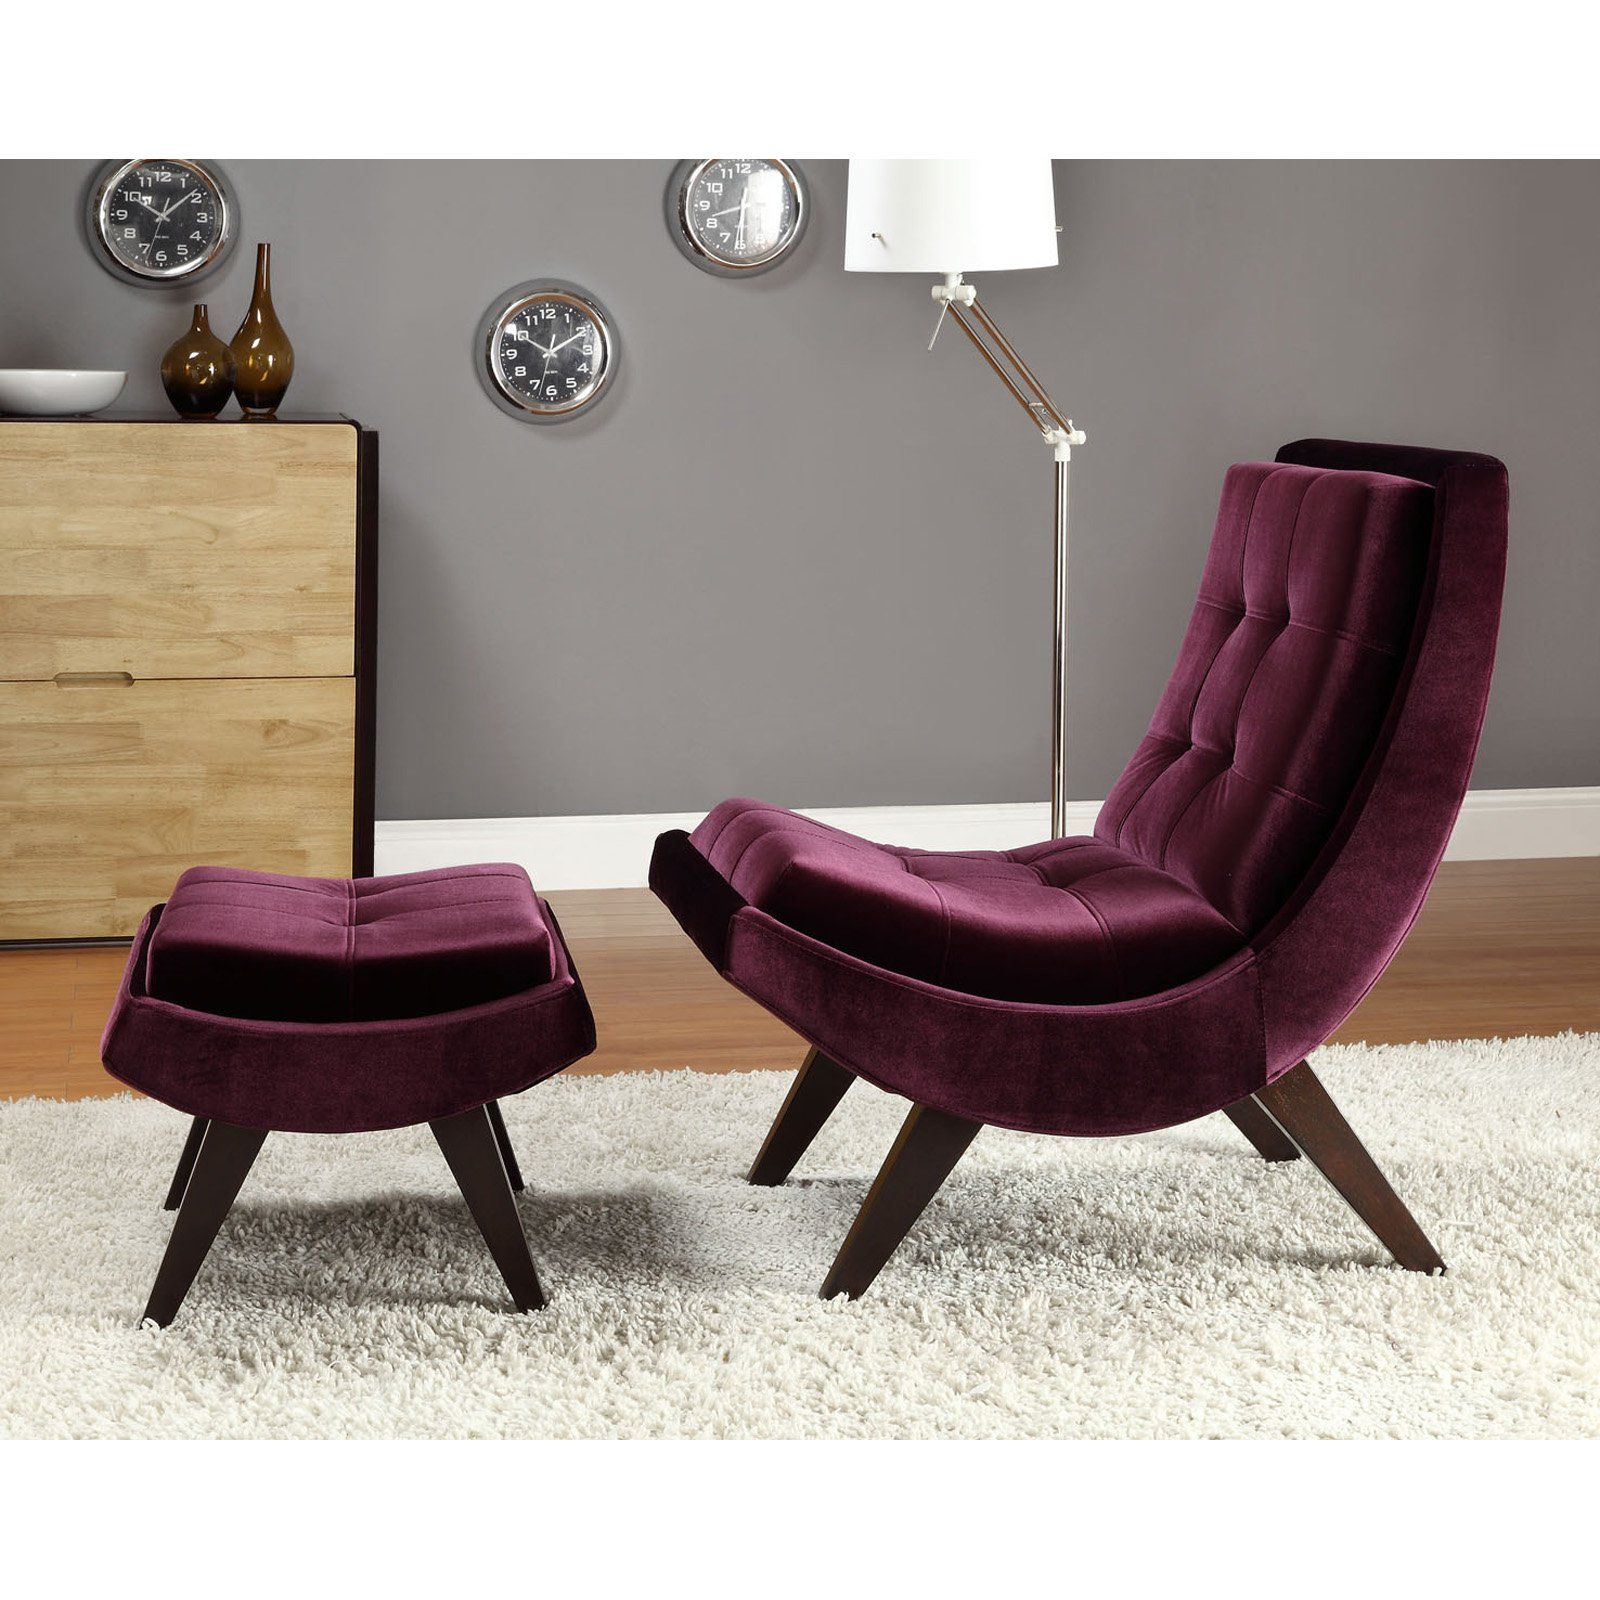 Sensational Chelsea Lane Lashay Velvet Lounge Chair Ottoman Purple Gmtry Best Dining Table And Chair Ideas Images Gmtryco